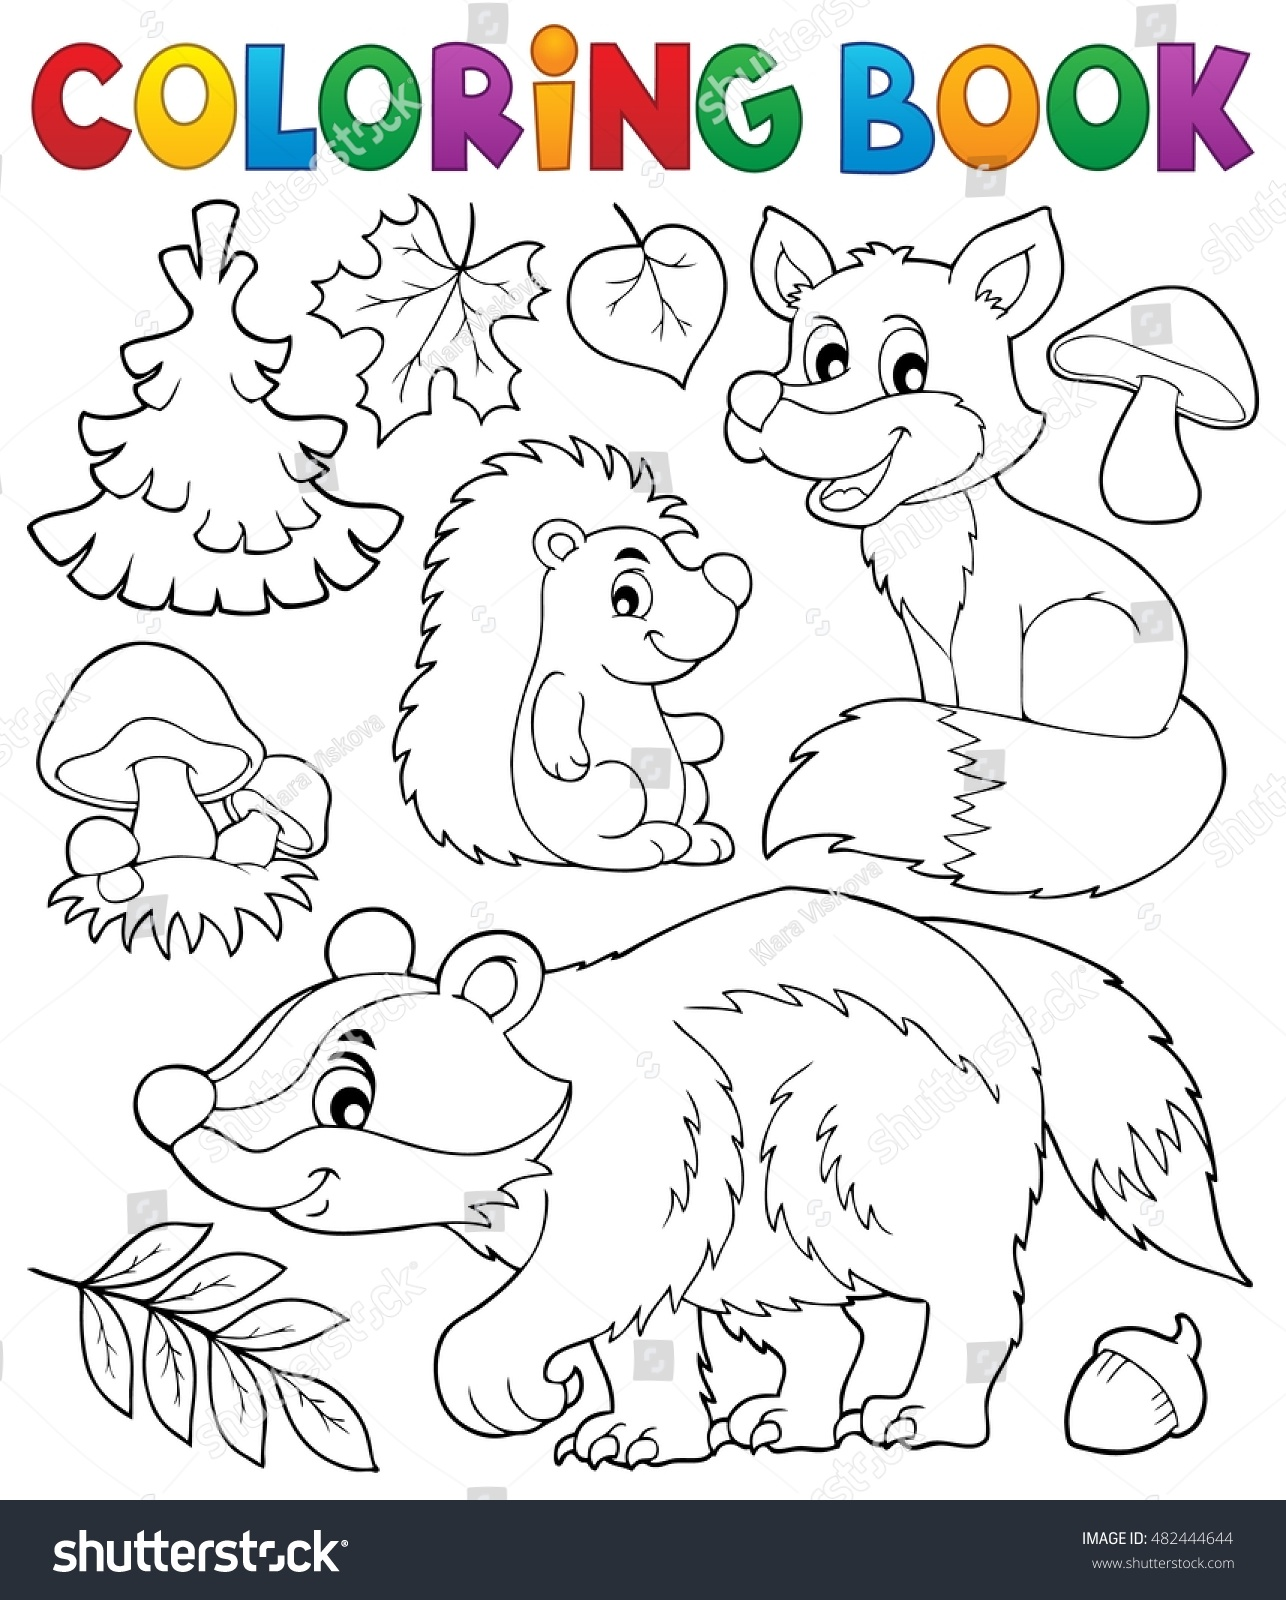 coloring book forest wildlife theme 1 stock vector 482444644